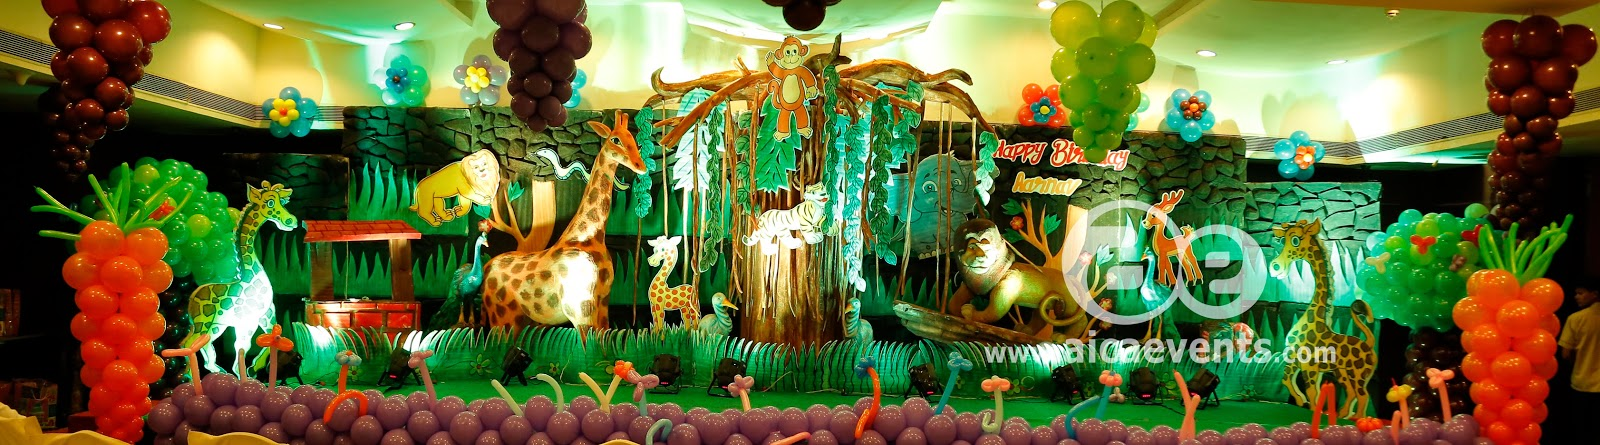 aicaevents Jungle Theme Birthday party Decorations